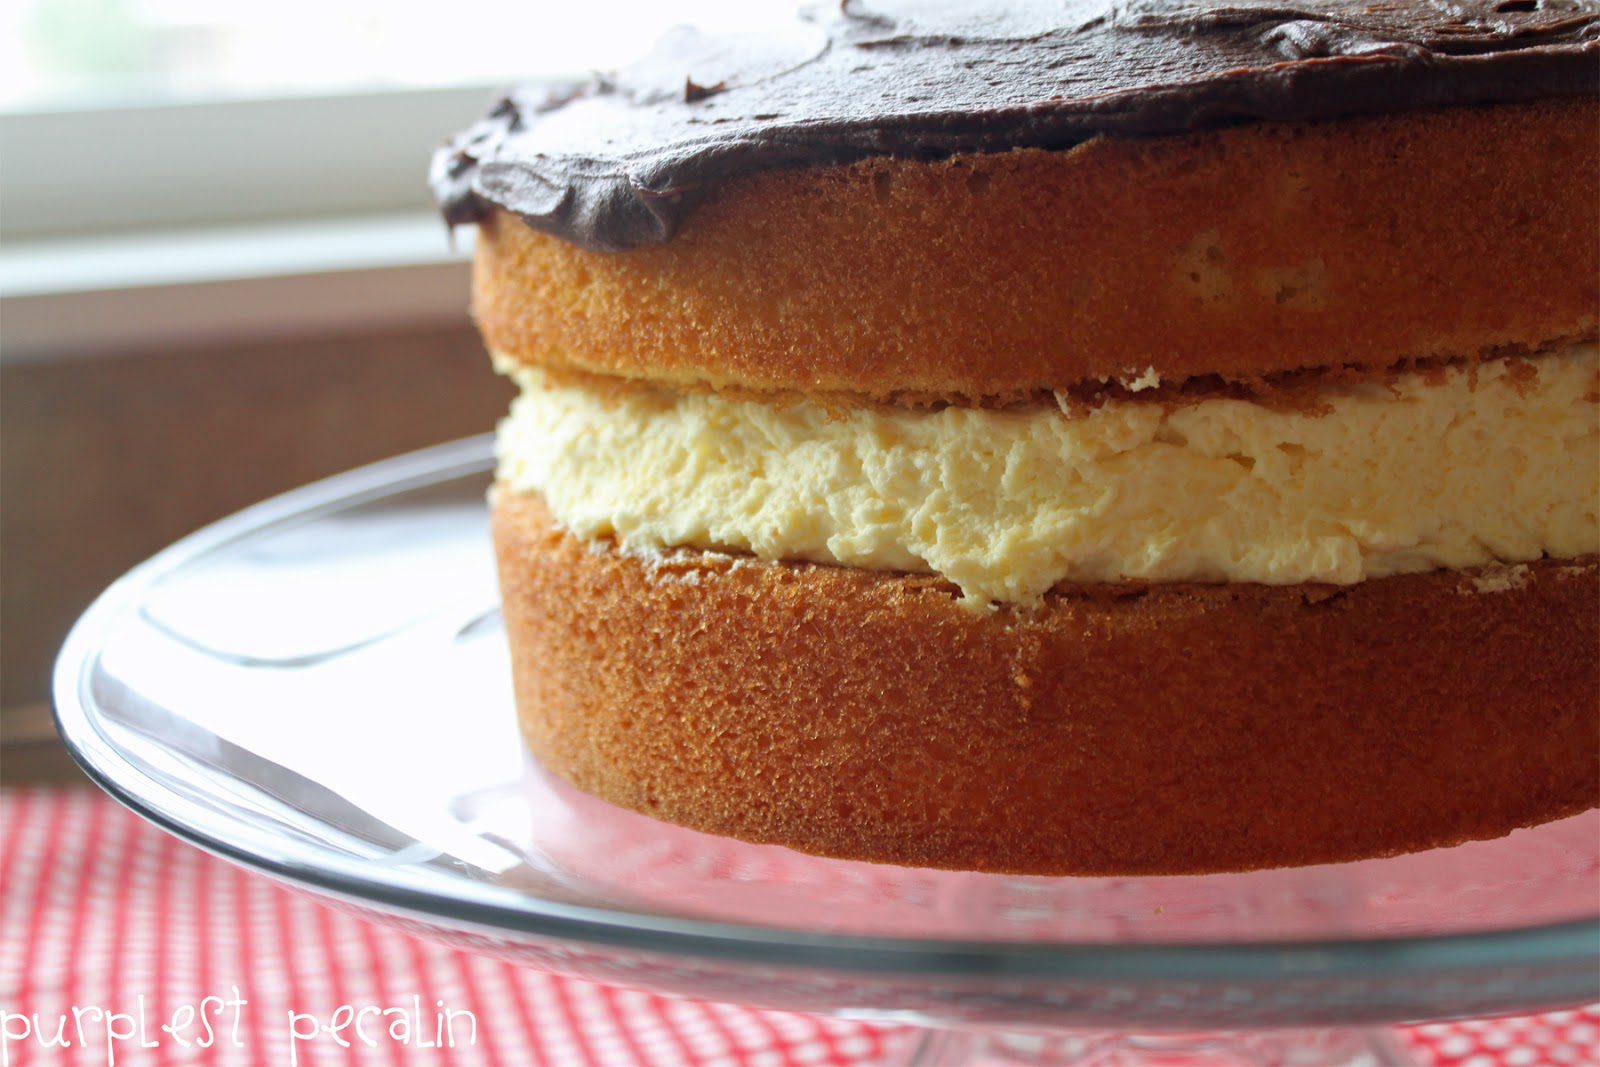 Next time, I'm going to make cute little Boston Cream Pie Cupcakes ...